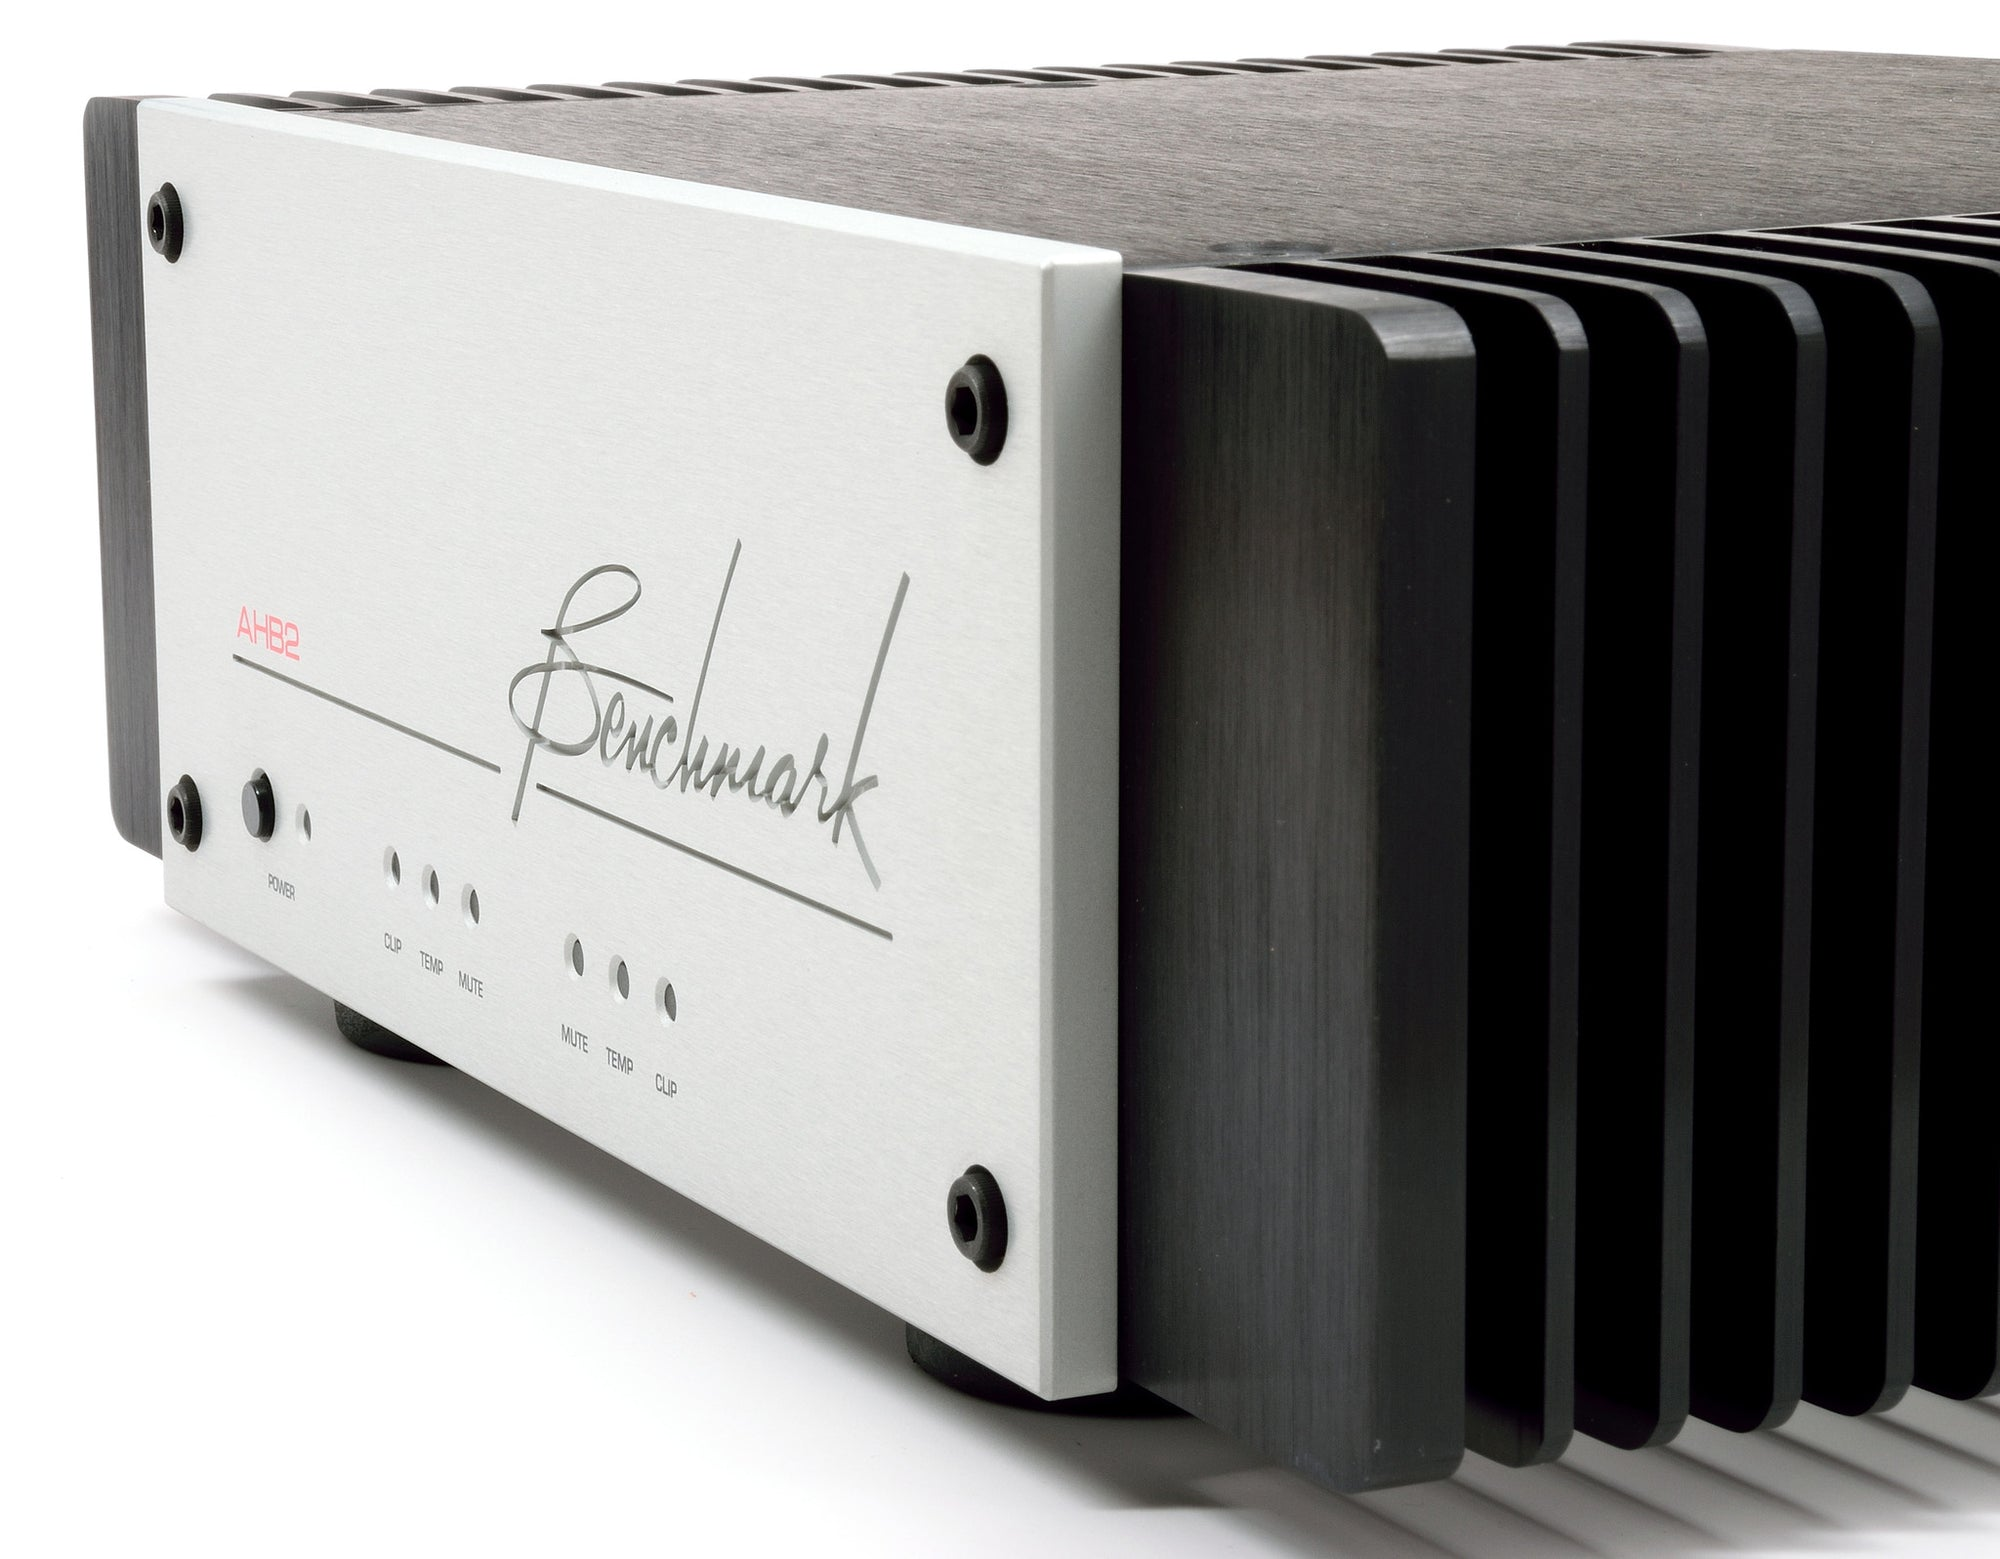 Benchmark Ahb2 Power Amplifier Media Systems Speakers Wired In Parallel Recommended Stable At 1 Ohm Mono